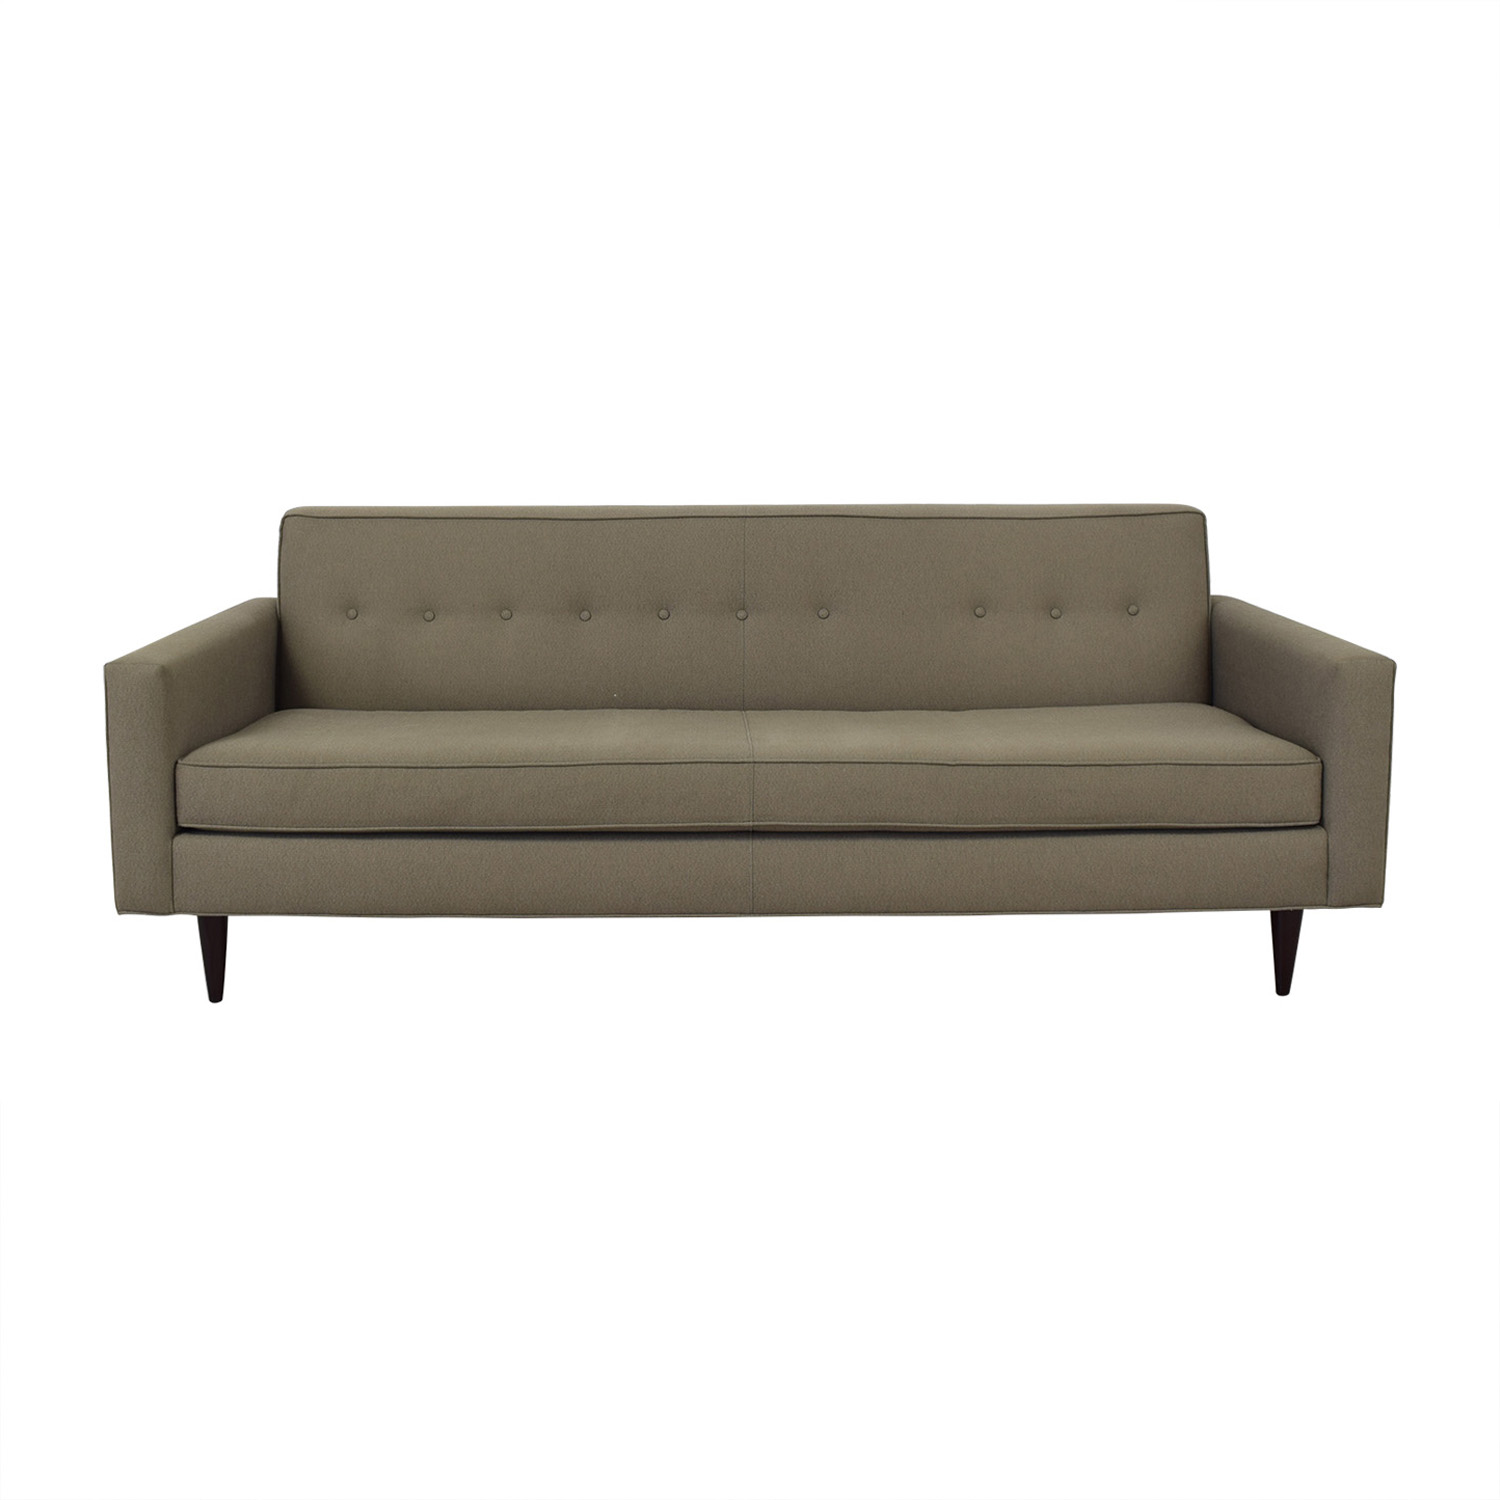 Design Within Reach Design Within Reach Bantam Sofa nj